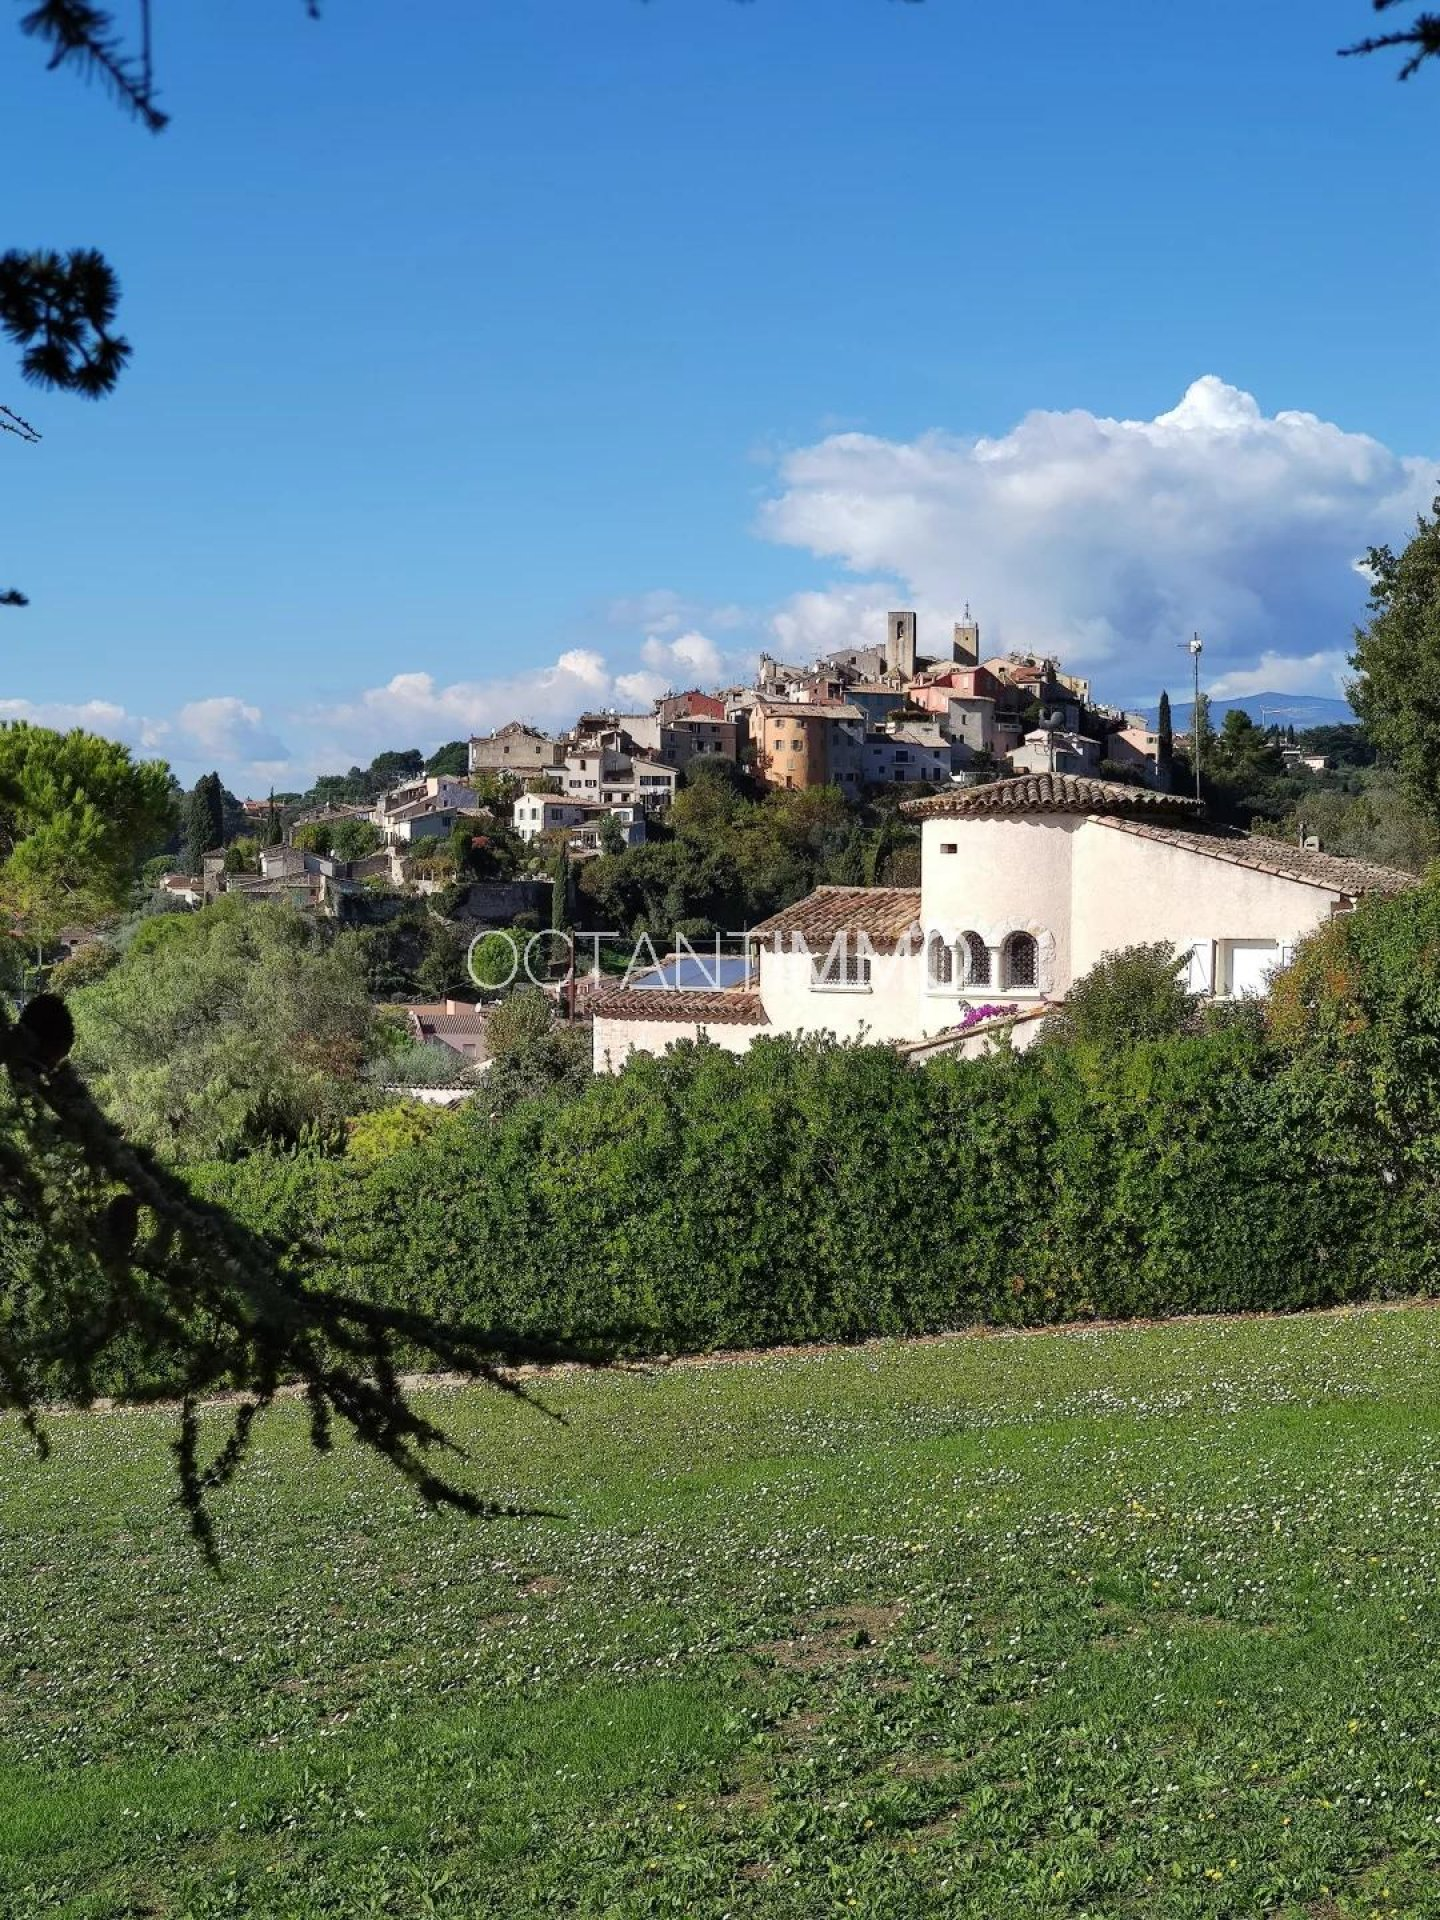 BIOT - HOUSE TO RENOVATE 570.000 € - OCTANTIMMO EXCLUSIVE